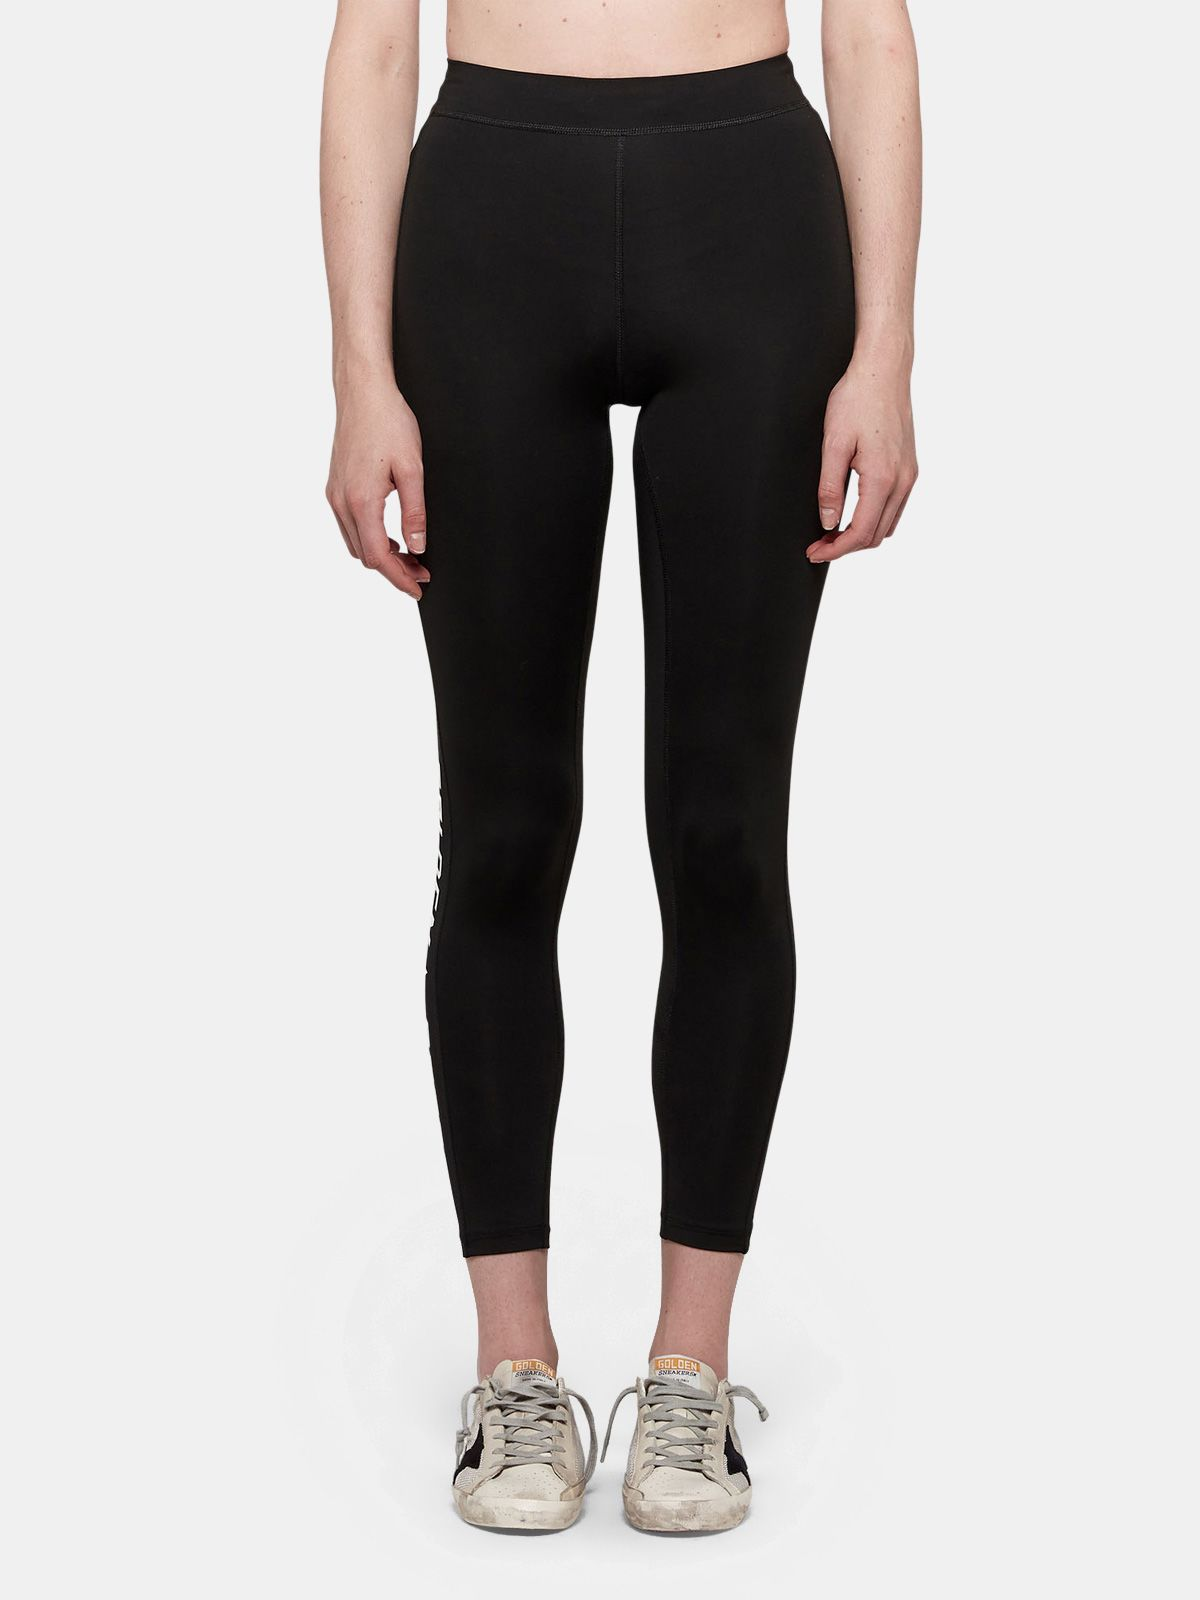 Golden Goose - Nori leggings in stretch fabric with contrasting logo in